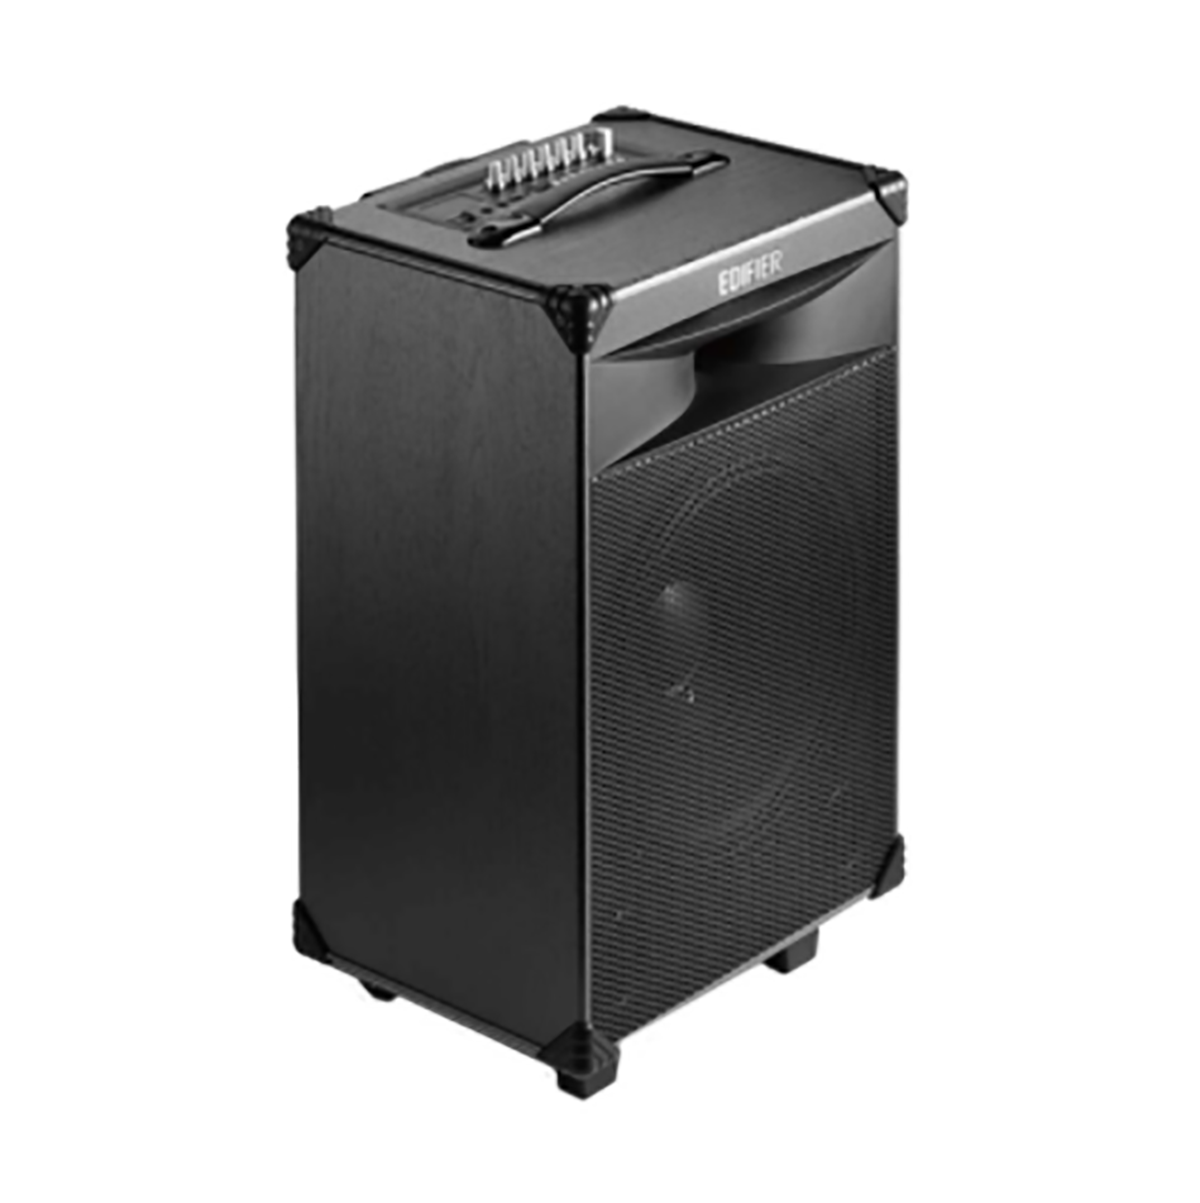 Edifier PW312 Bluetooth Portable Trolley Speaker with Dual Micro